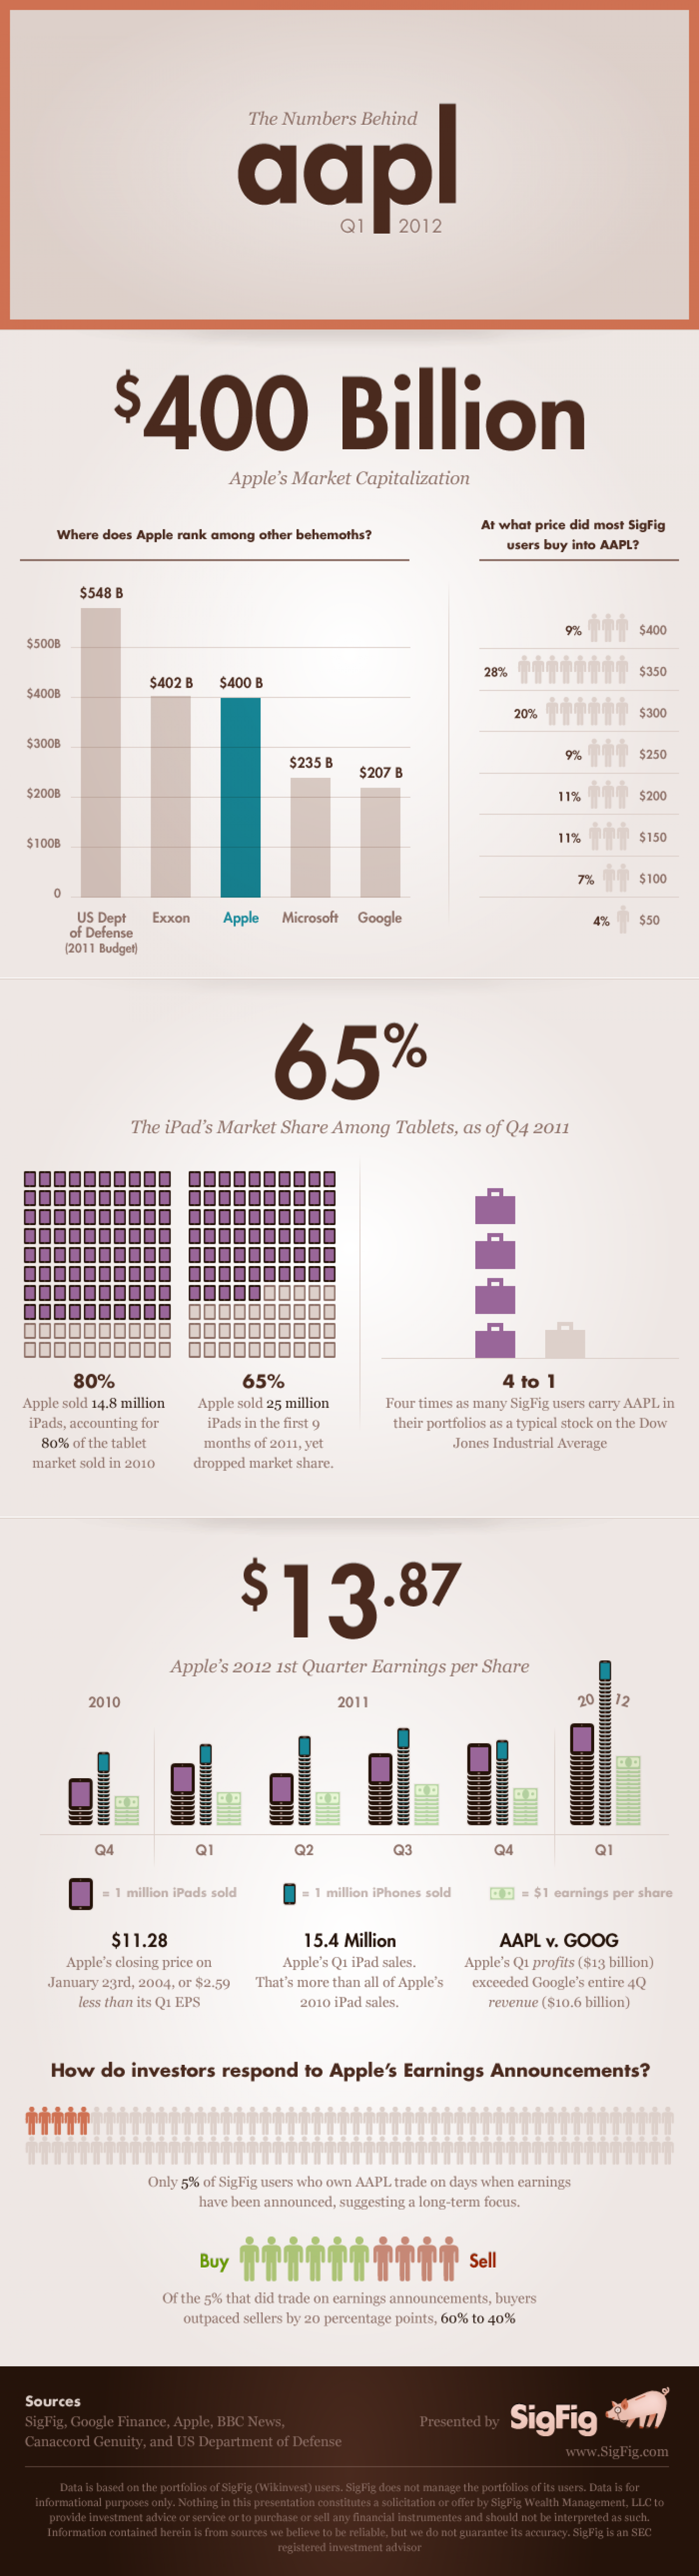 AAPL earnings infographic Infographic